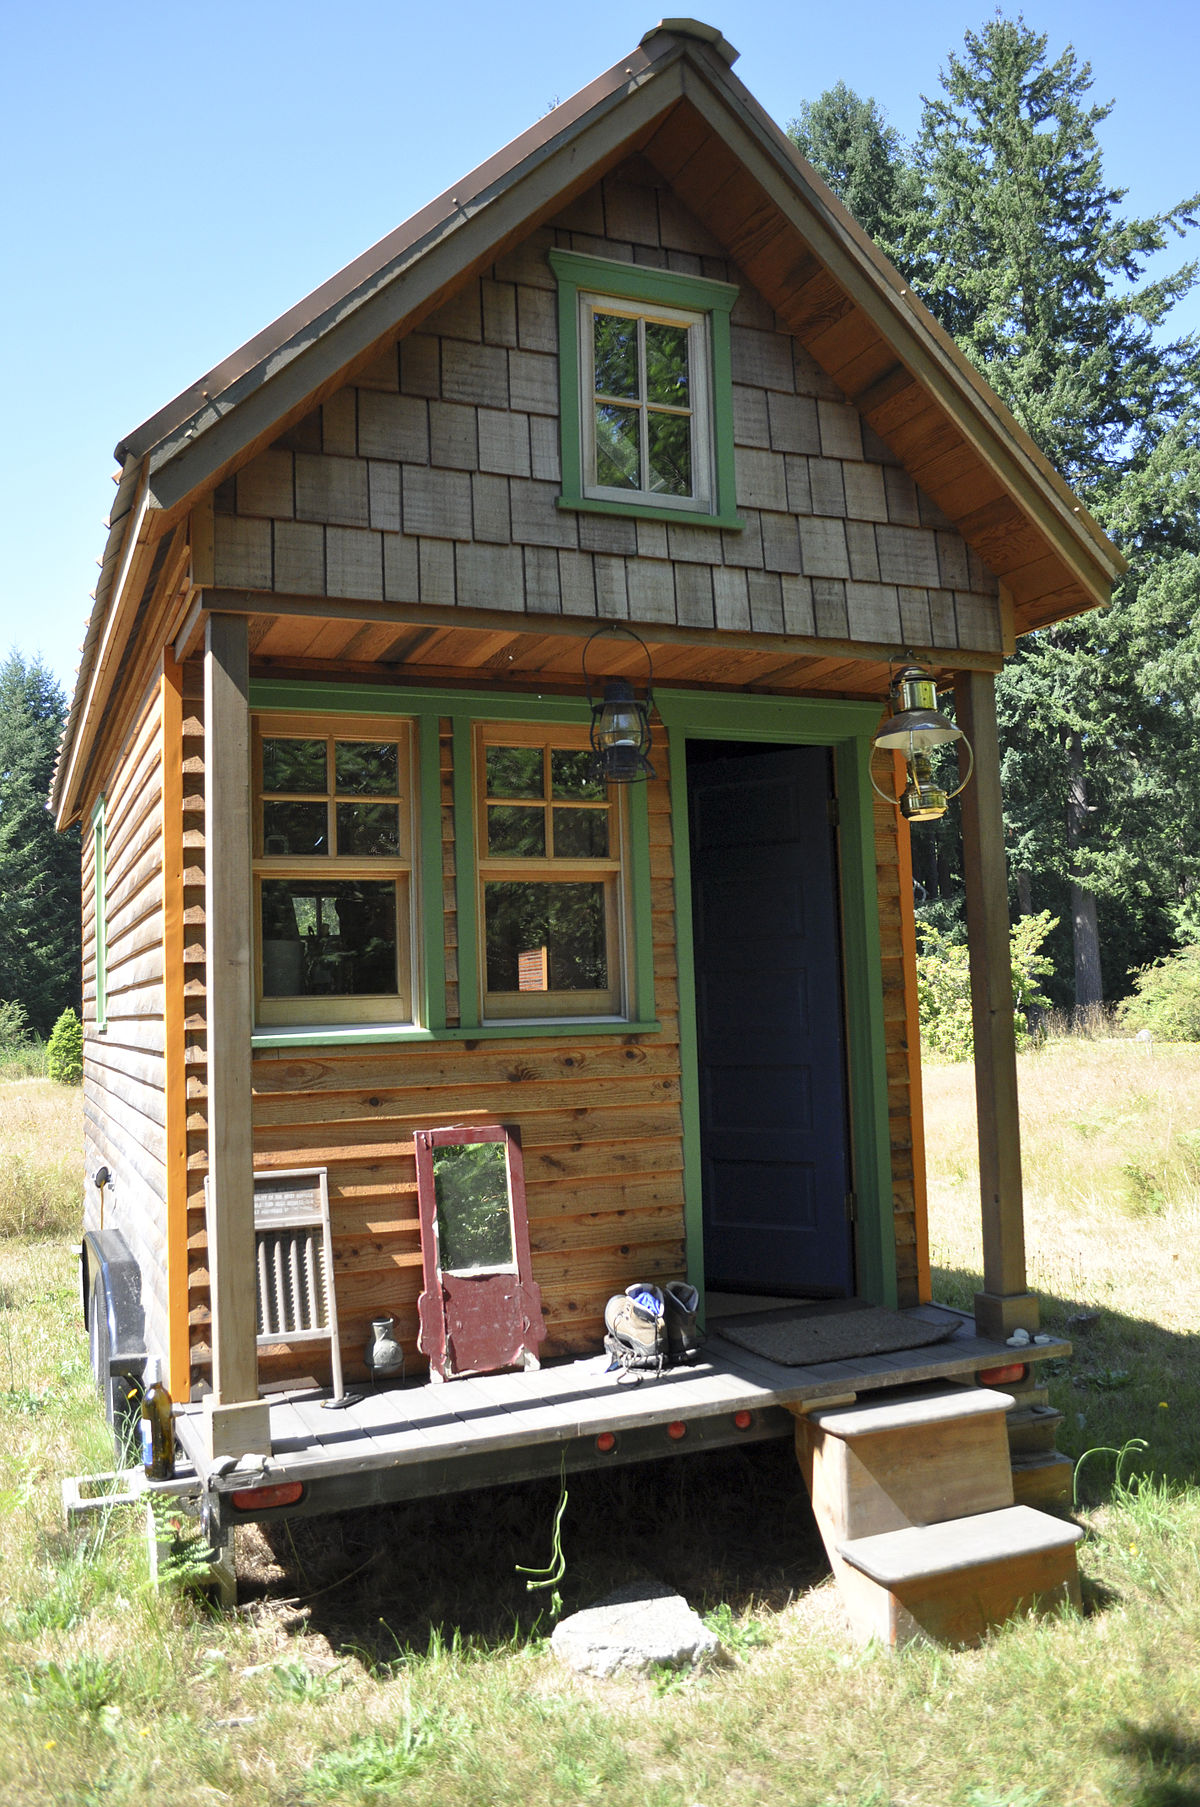 tiny house movement wikipedia - Smallest House In The World 2014